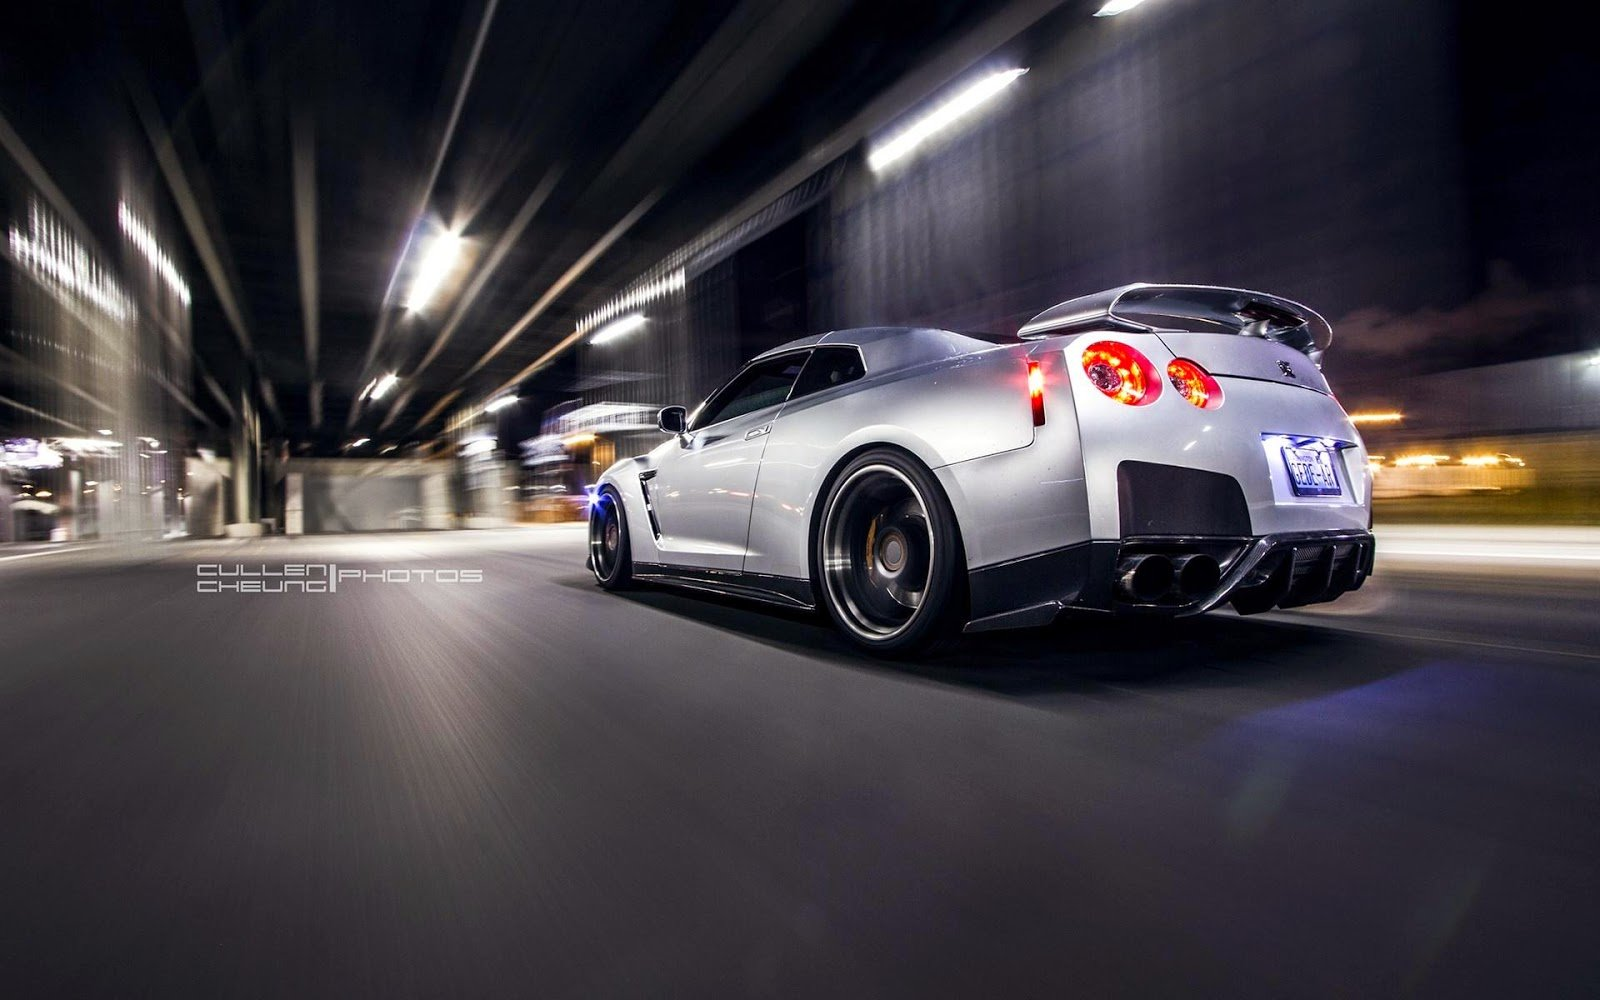 Latest Hd Night Nissan Gt R R35 Car Wallpapers Hd Wallpaper Free Download